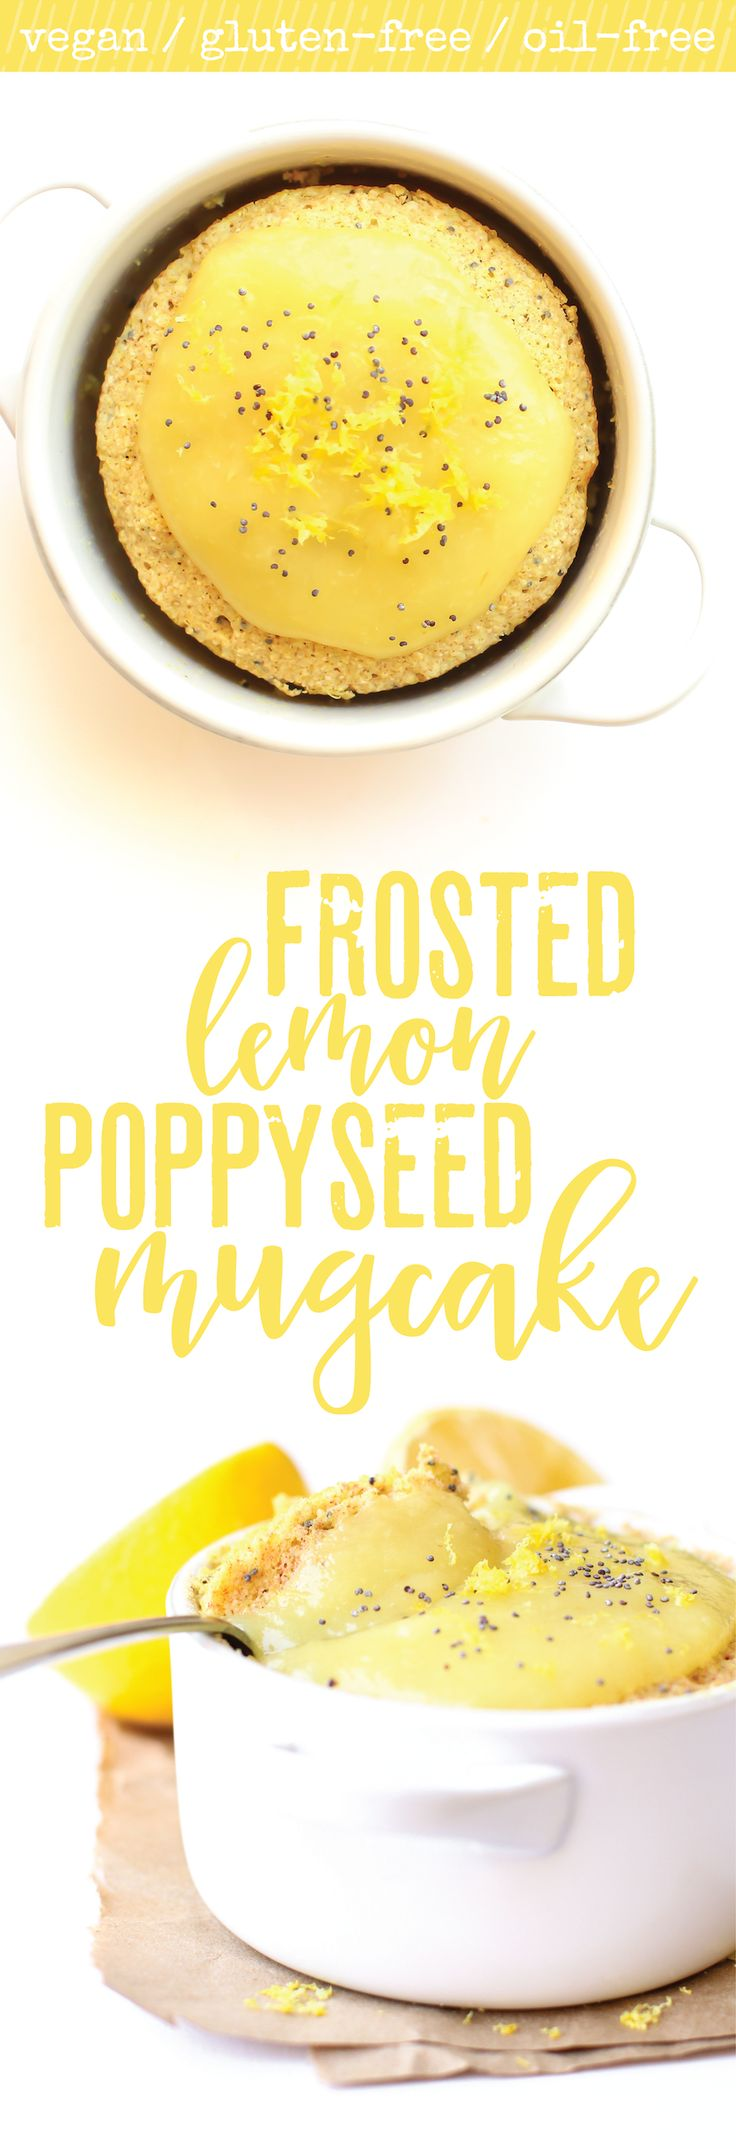 Lemon poppy seed cake for one made in just minutes and topped with a sweet fruity frosting!